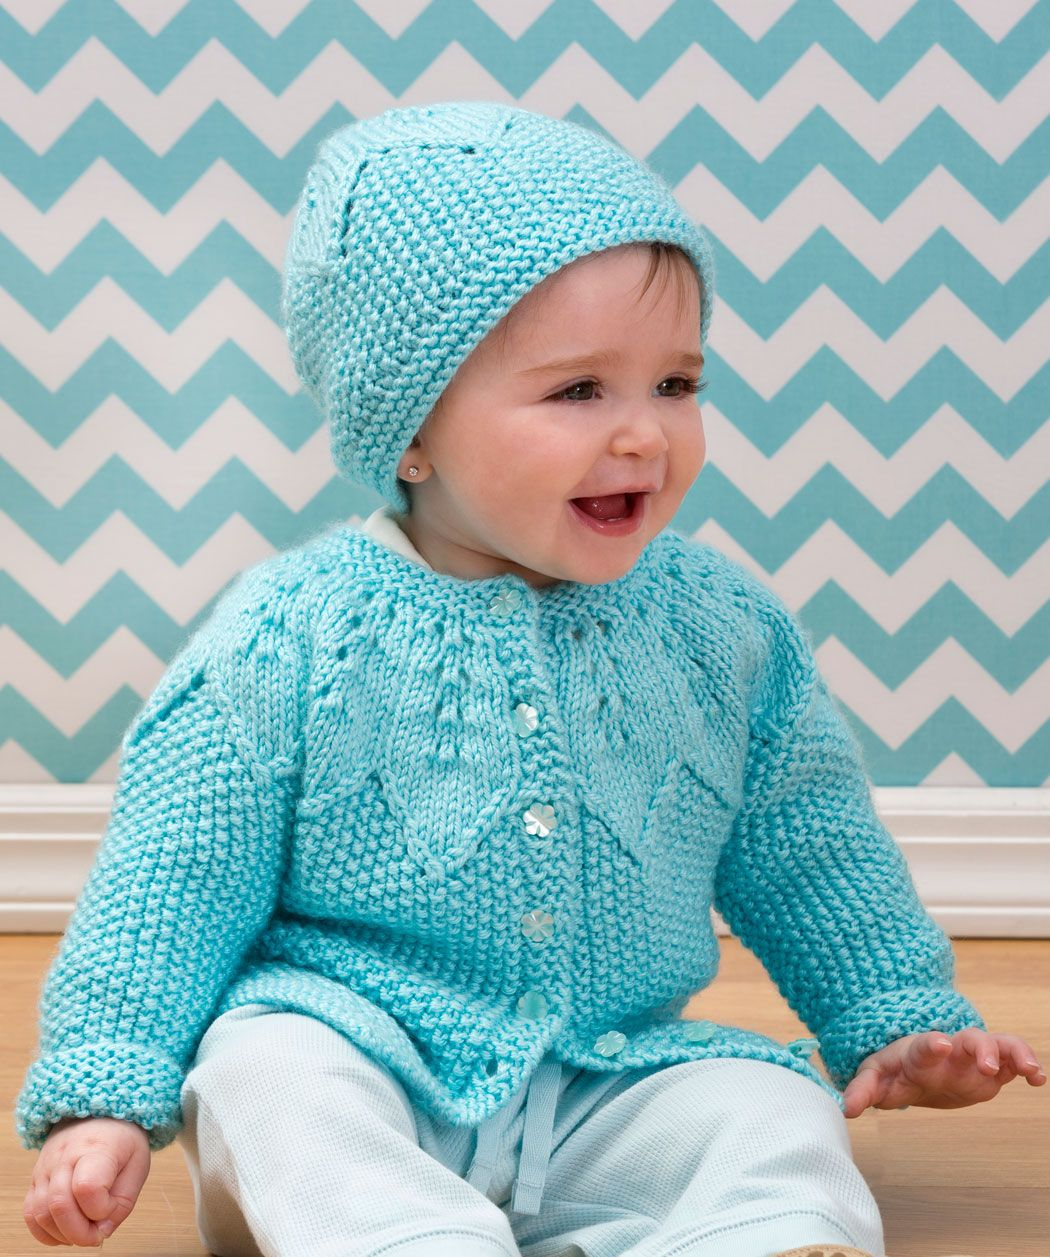 Star Bright Baby Cardigan and Hat Knitting Pattern | Red ...